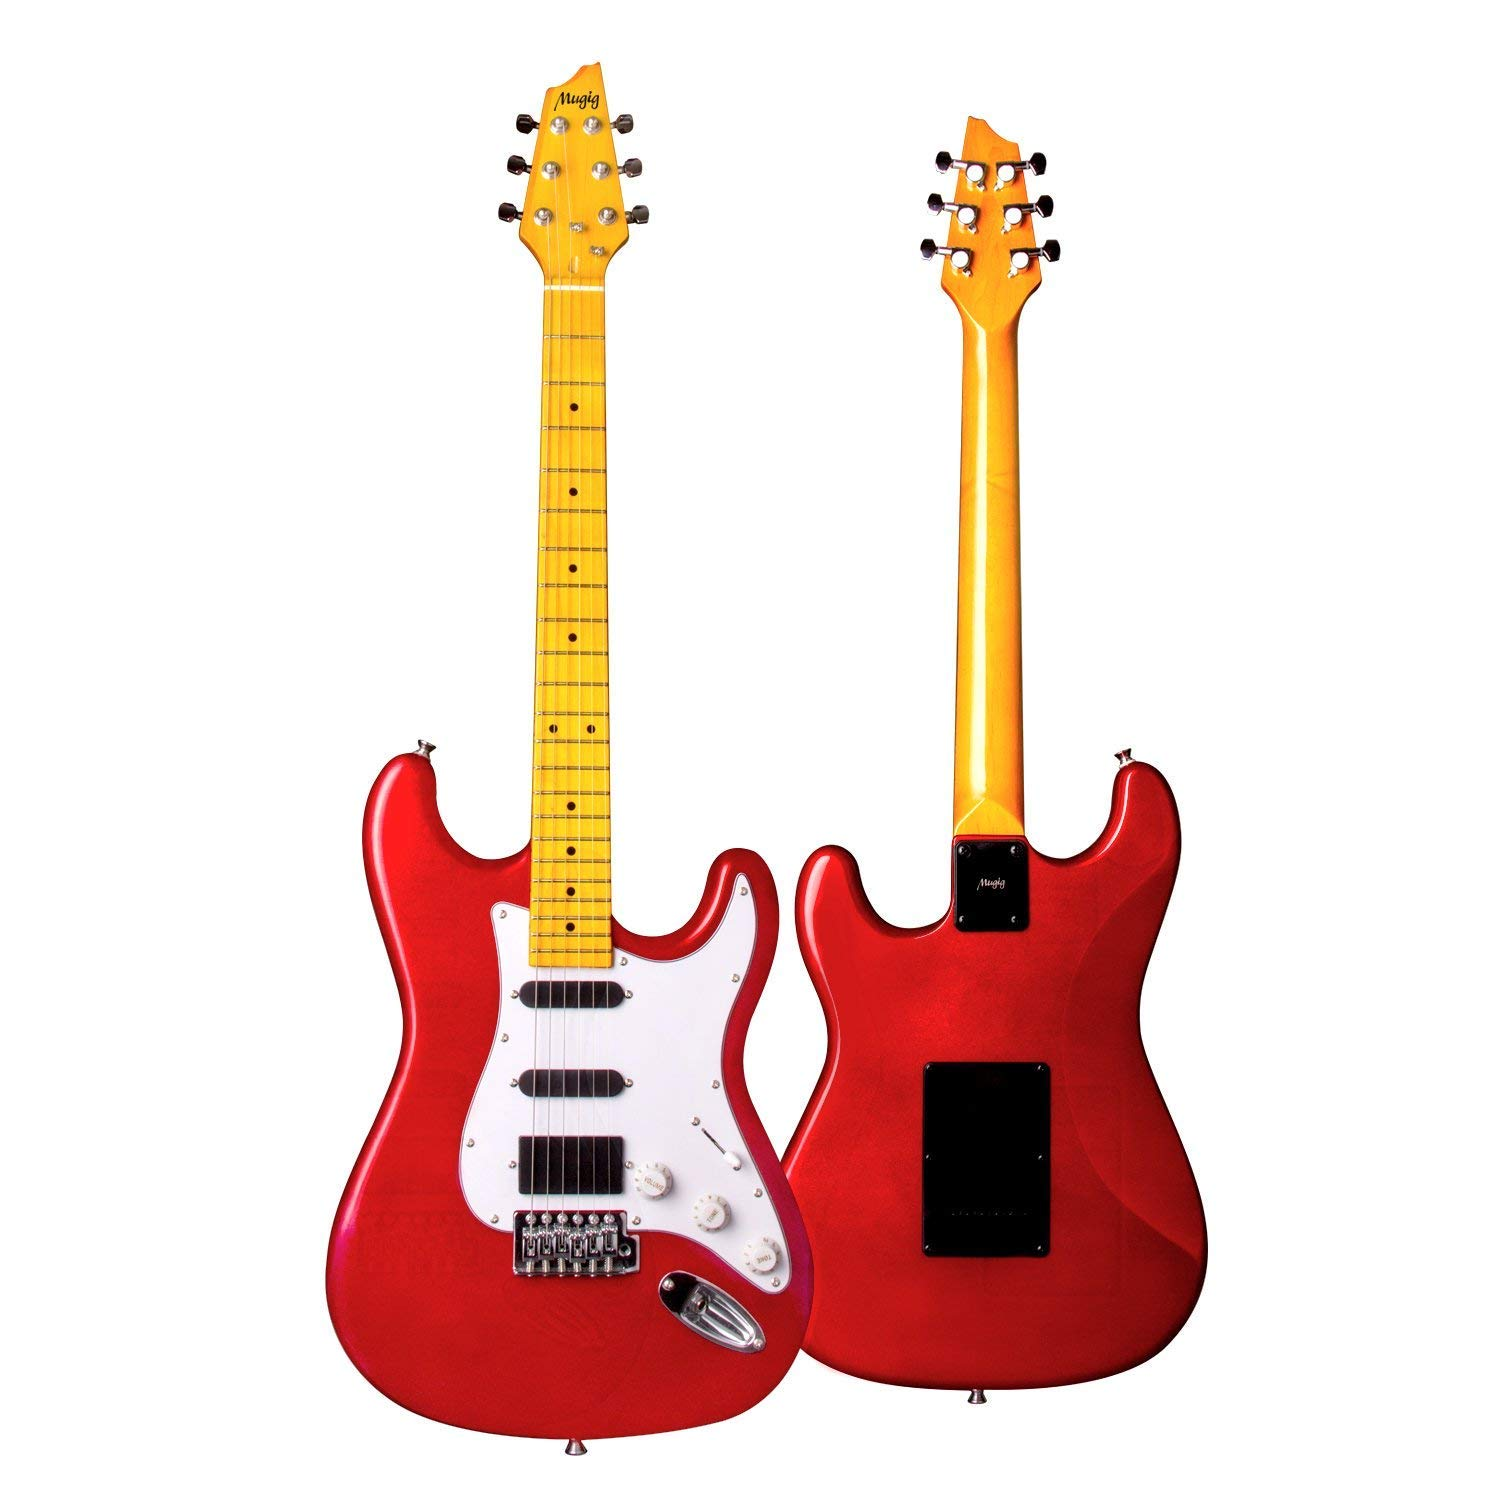 Mugig Electric Guitar 39 Inches, with Two Single-coil and One Humbucker Pickups, Glossy Surface Paint and Comfortable Feel. Electric Guitar Full Size, Poplar Body and Maple Fingerboard. (guitar) GTN-1